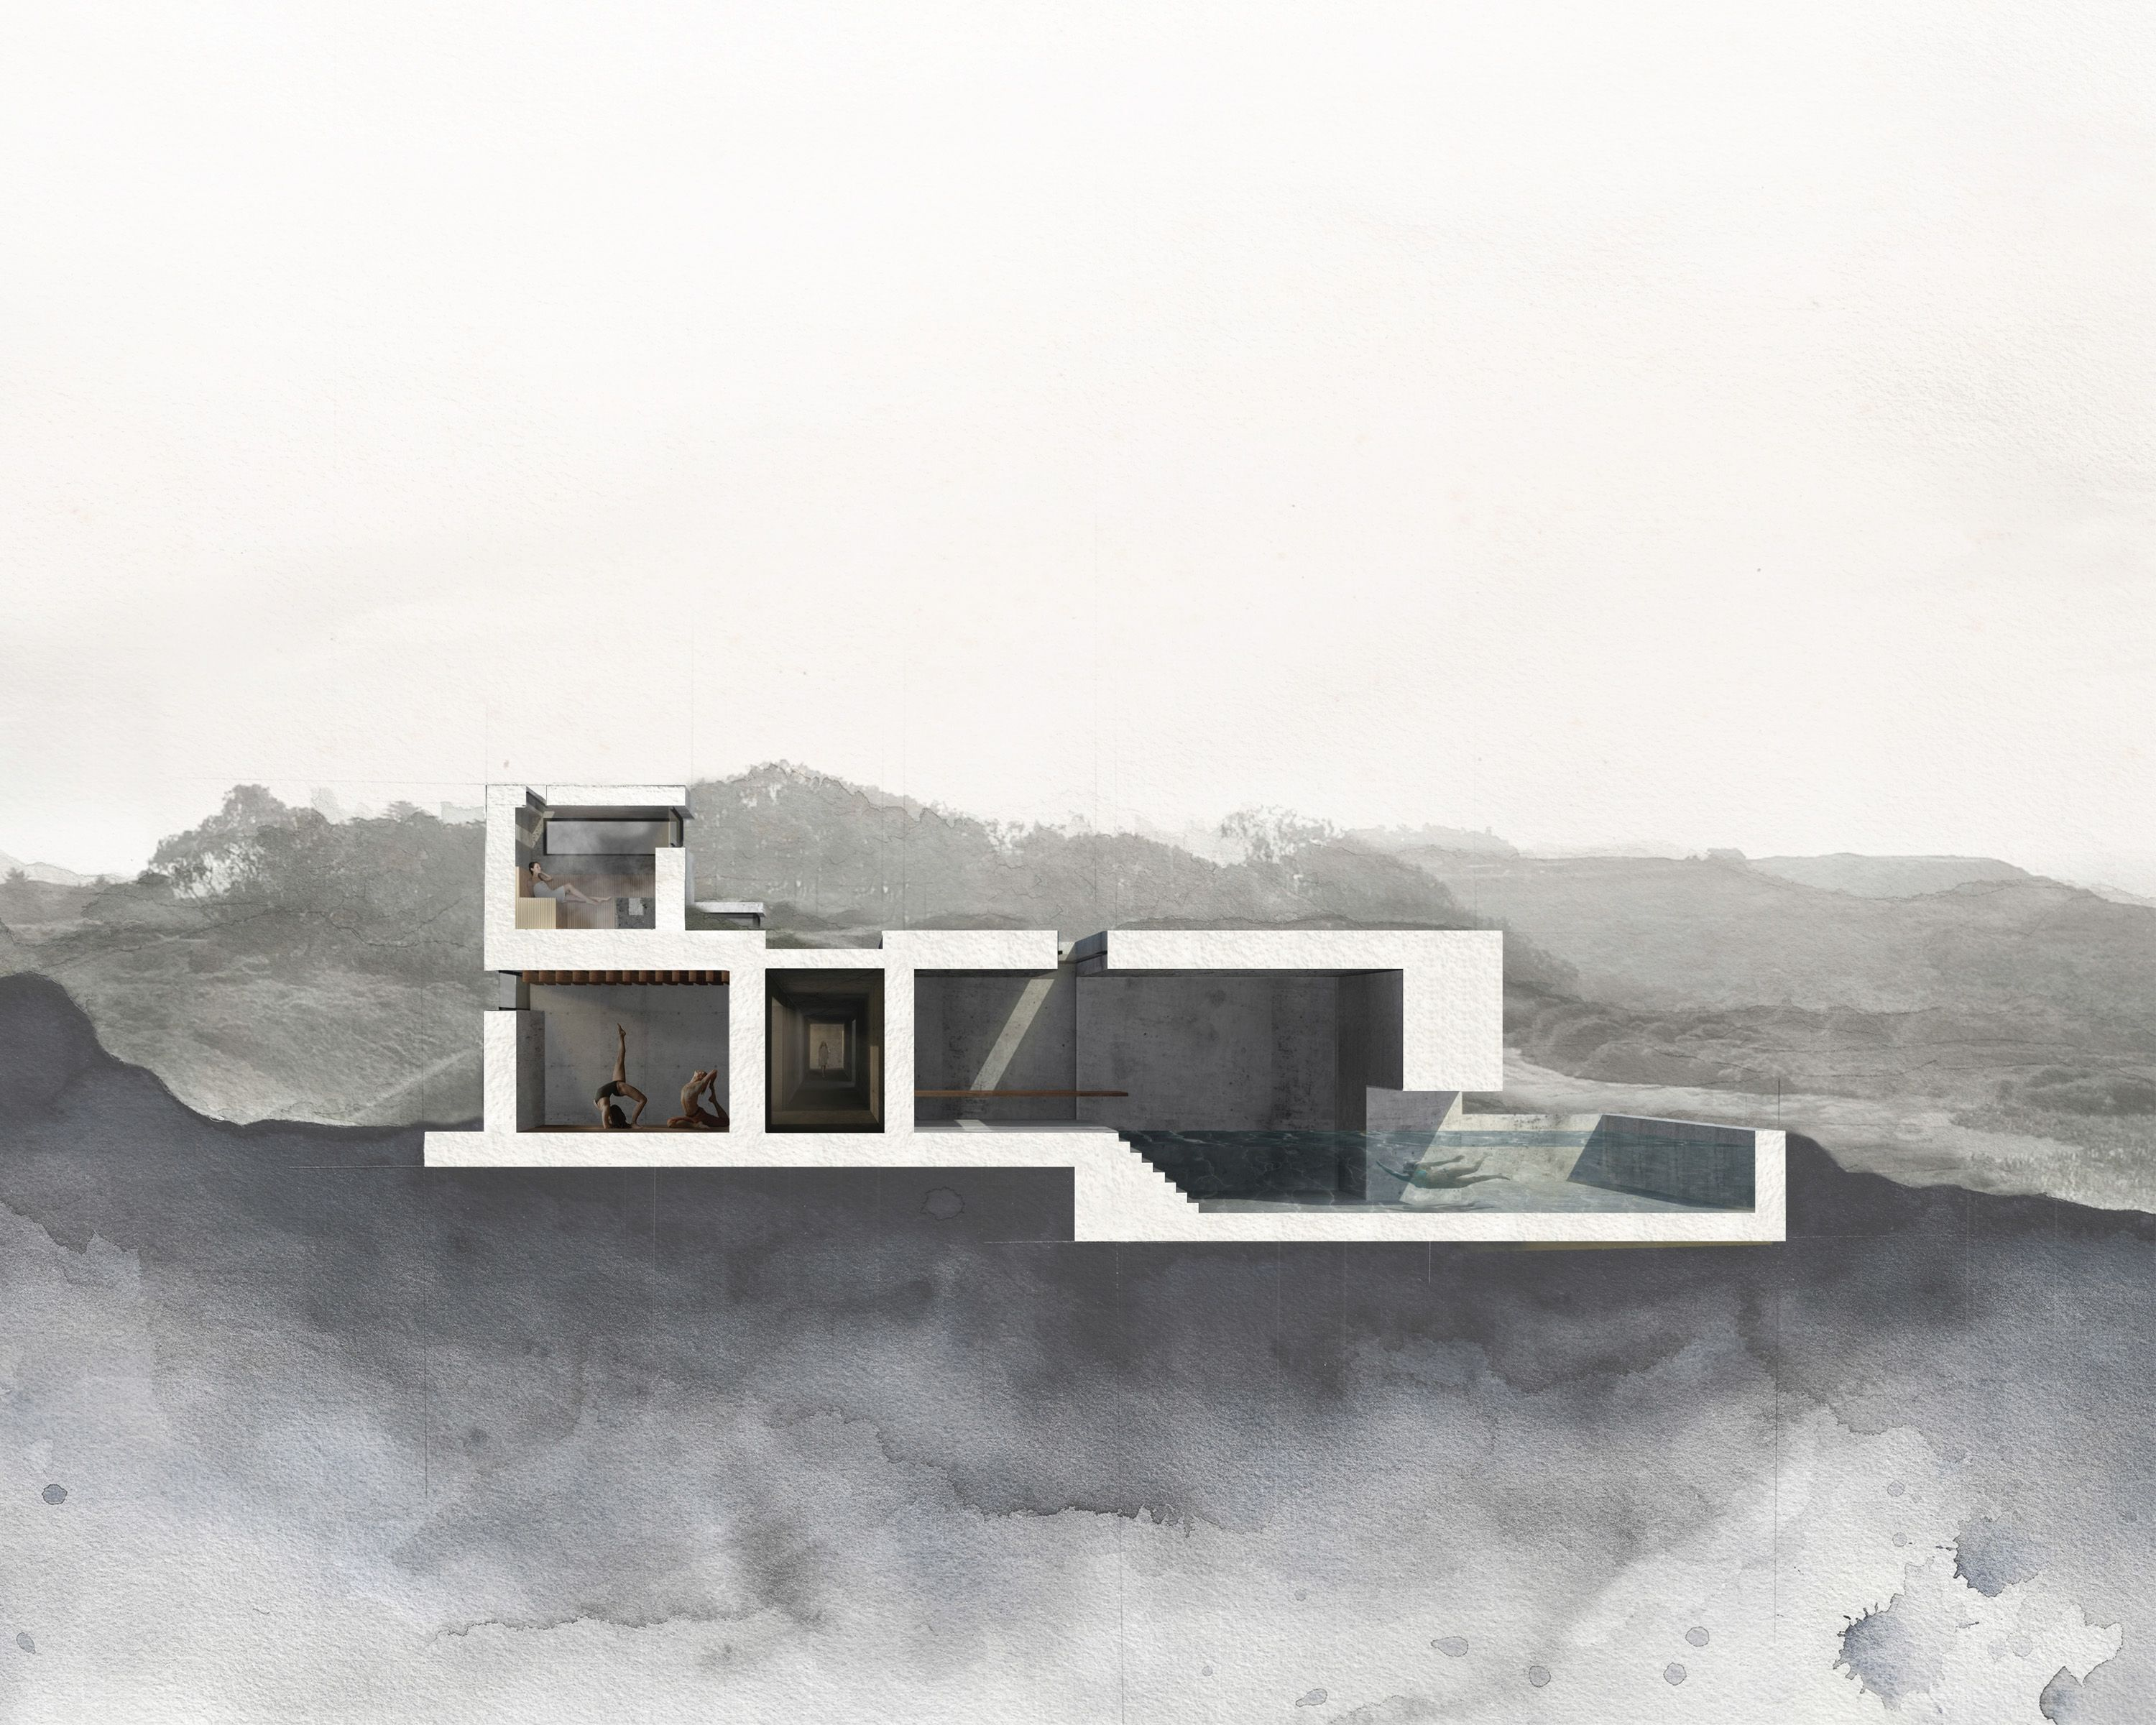 occupied artifact cal poly architecture thesis 2014 section perspective architecture. Black Bedroom Furniture Sets. Home Design Ideas